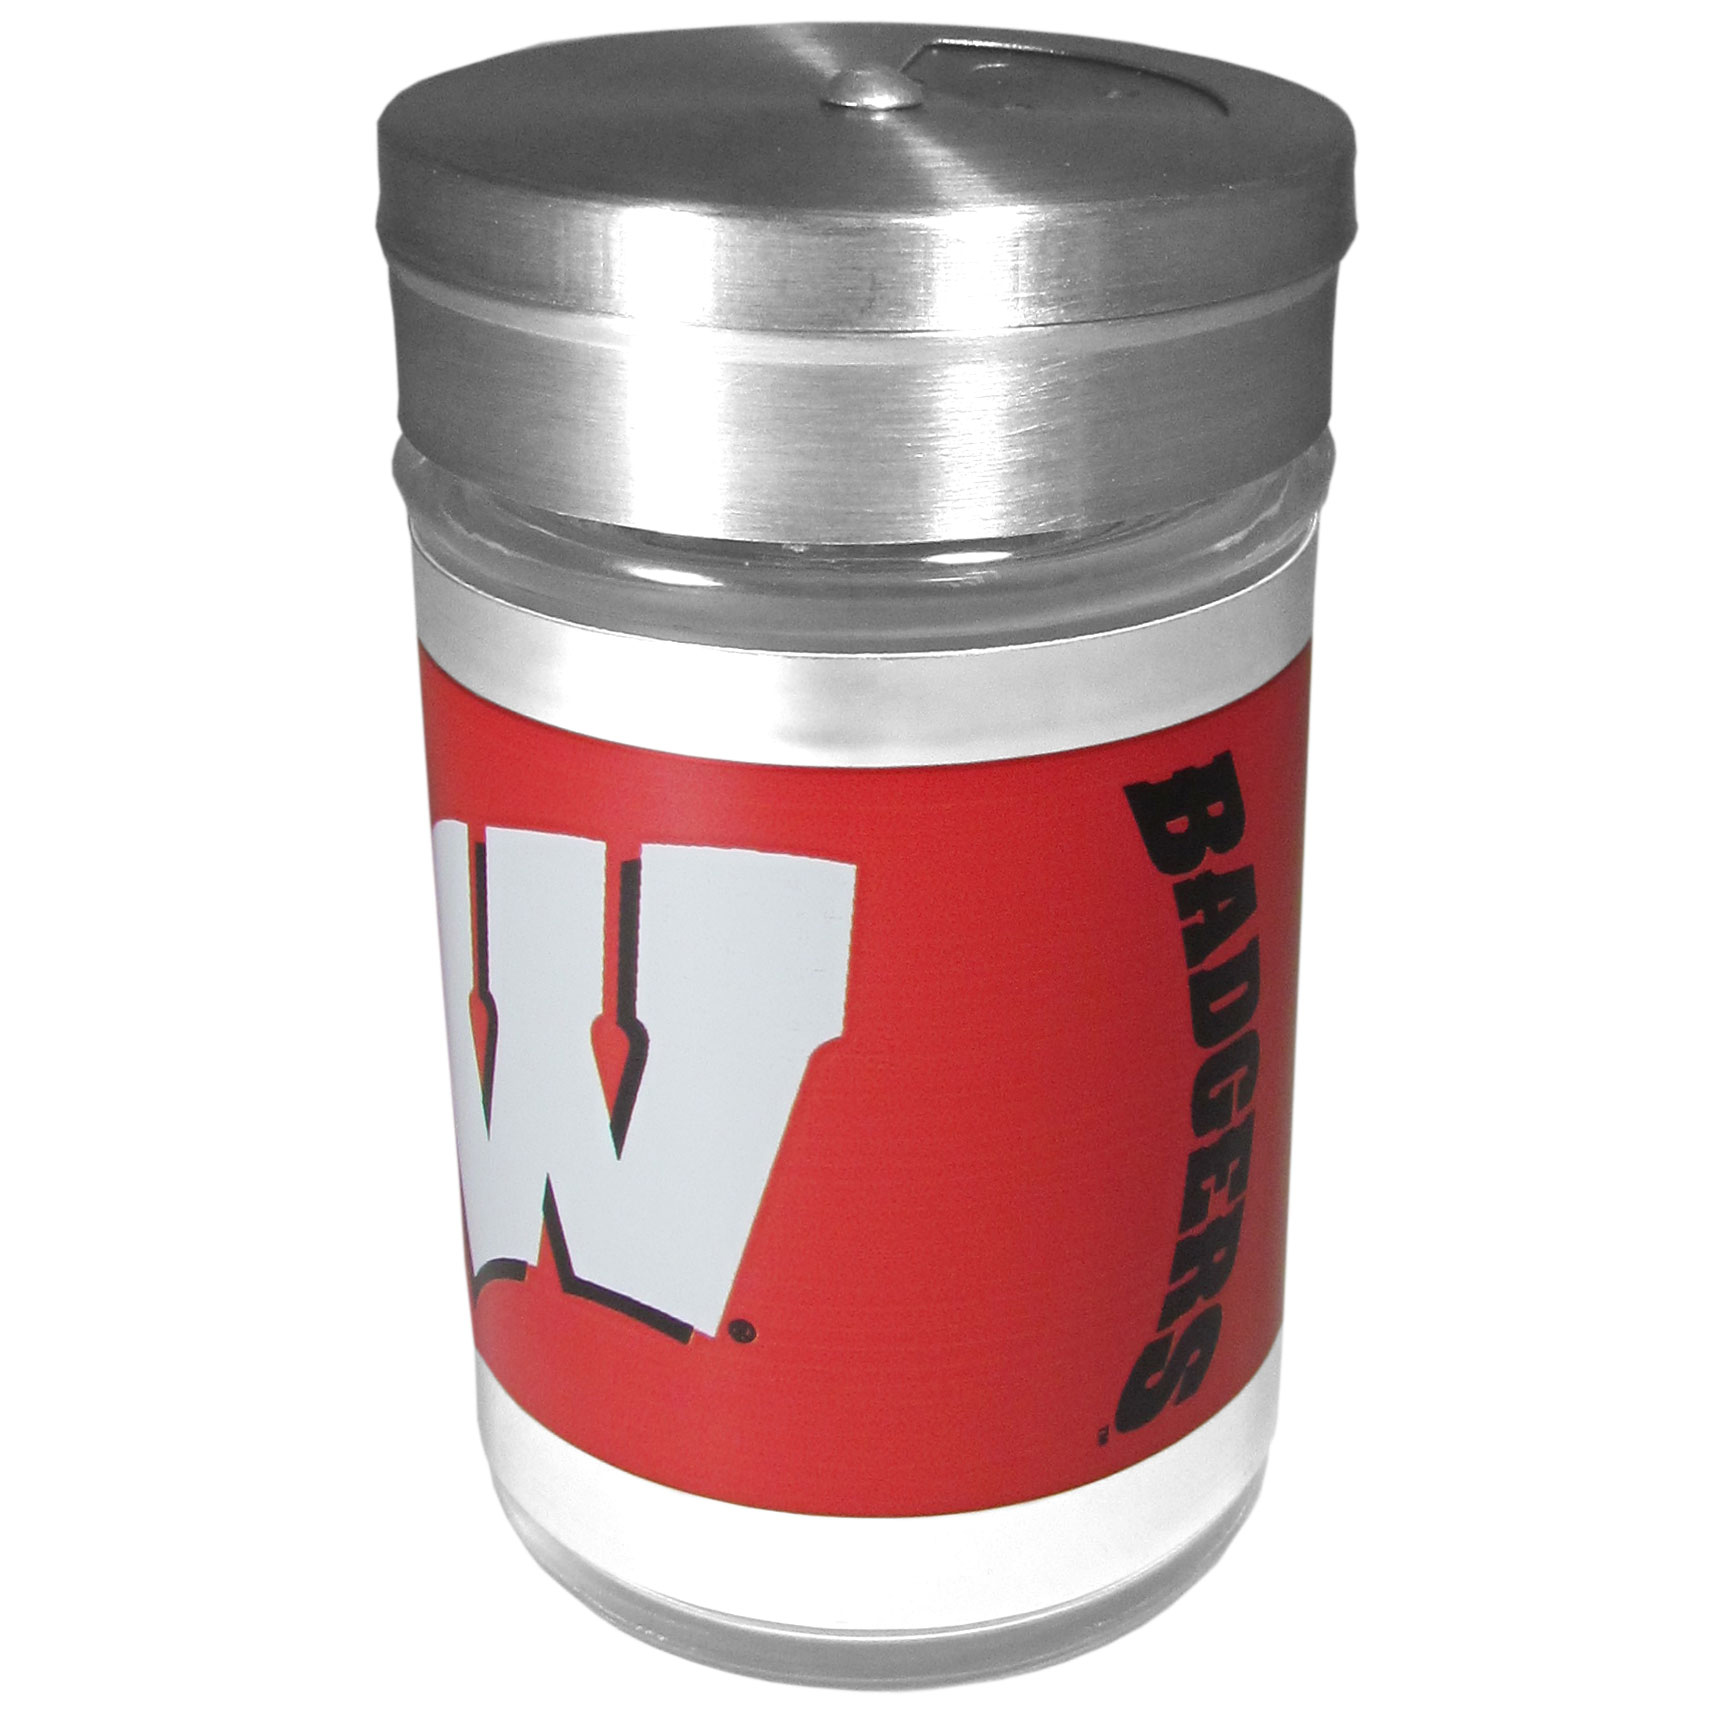 Wisconsin Badgers Tailgater Season Shakers - Spice it up with our Wisconsin Badgers tailgater season shakers! This compact shaker is 2 inch tall with a twist top that closes off the holes at the top making it perfect for travel preventing those messy spills. The shaker has wide holes perfect for keeping your pepper seeds or cheese toppings. The bright team graphics will make you the envy of the other fans while you are grilling up your tailgating goodies.